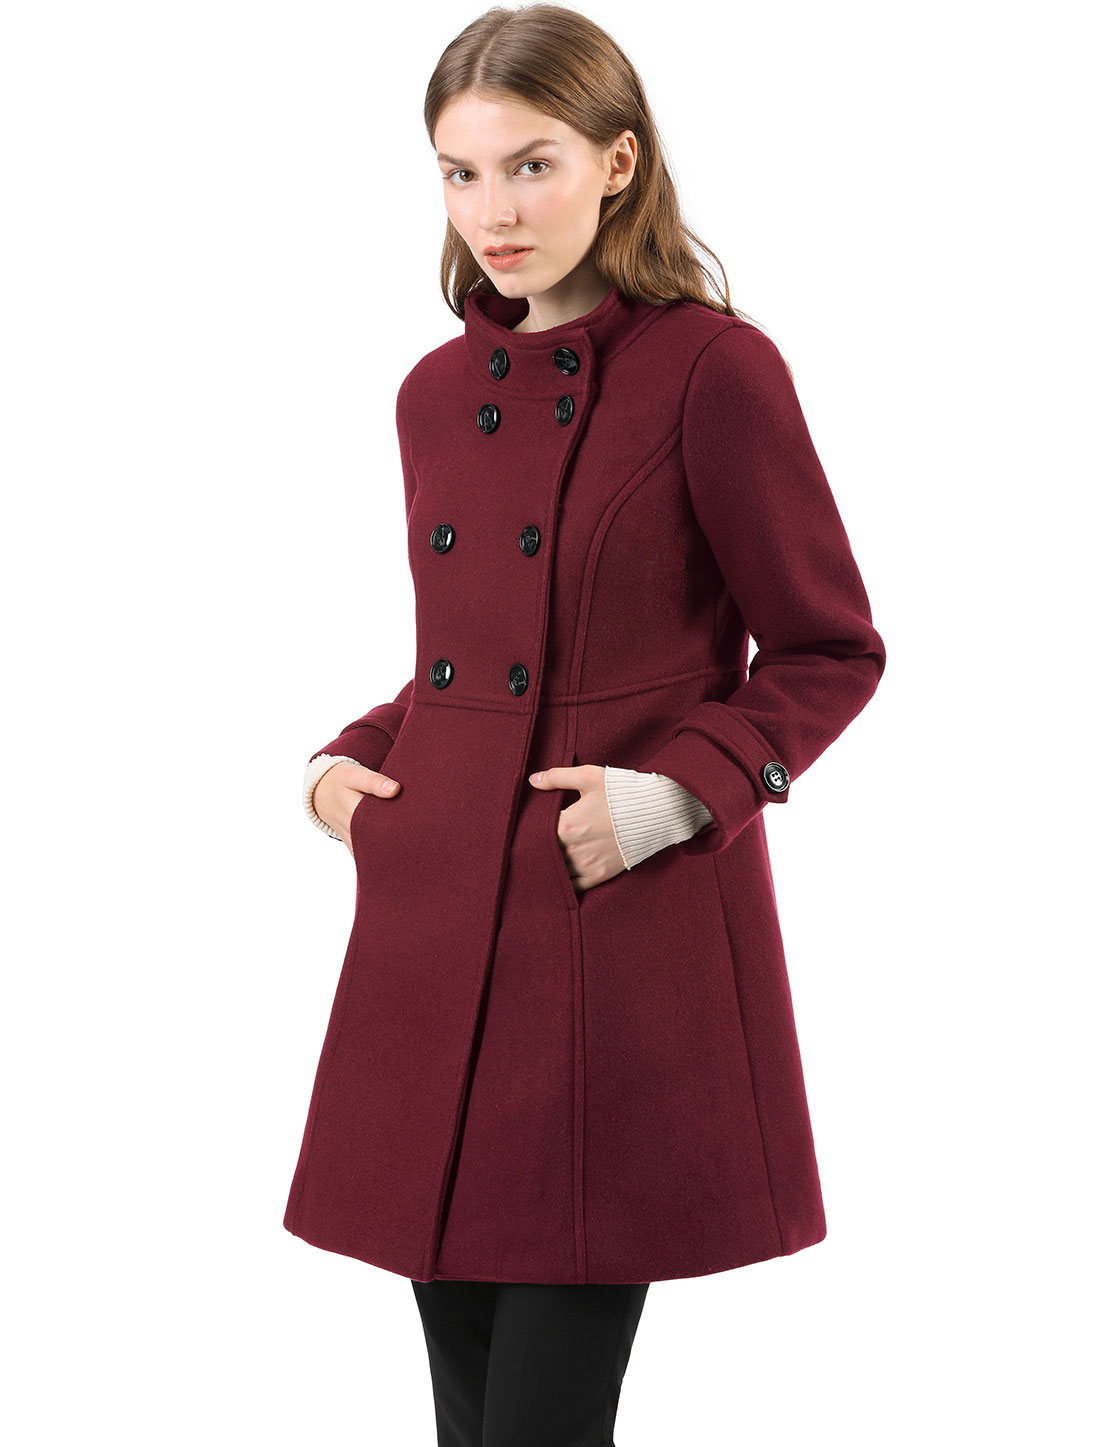 Women's Stand Collar Double Breasted A-Line Winter Outwear Coat Burgundy S